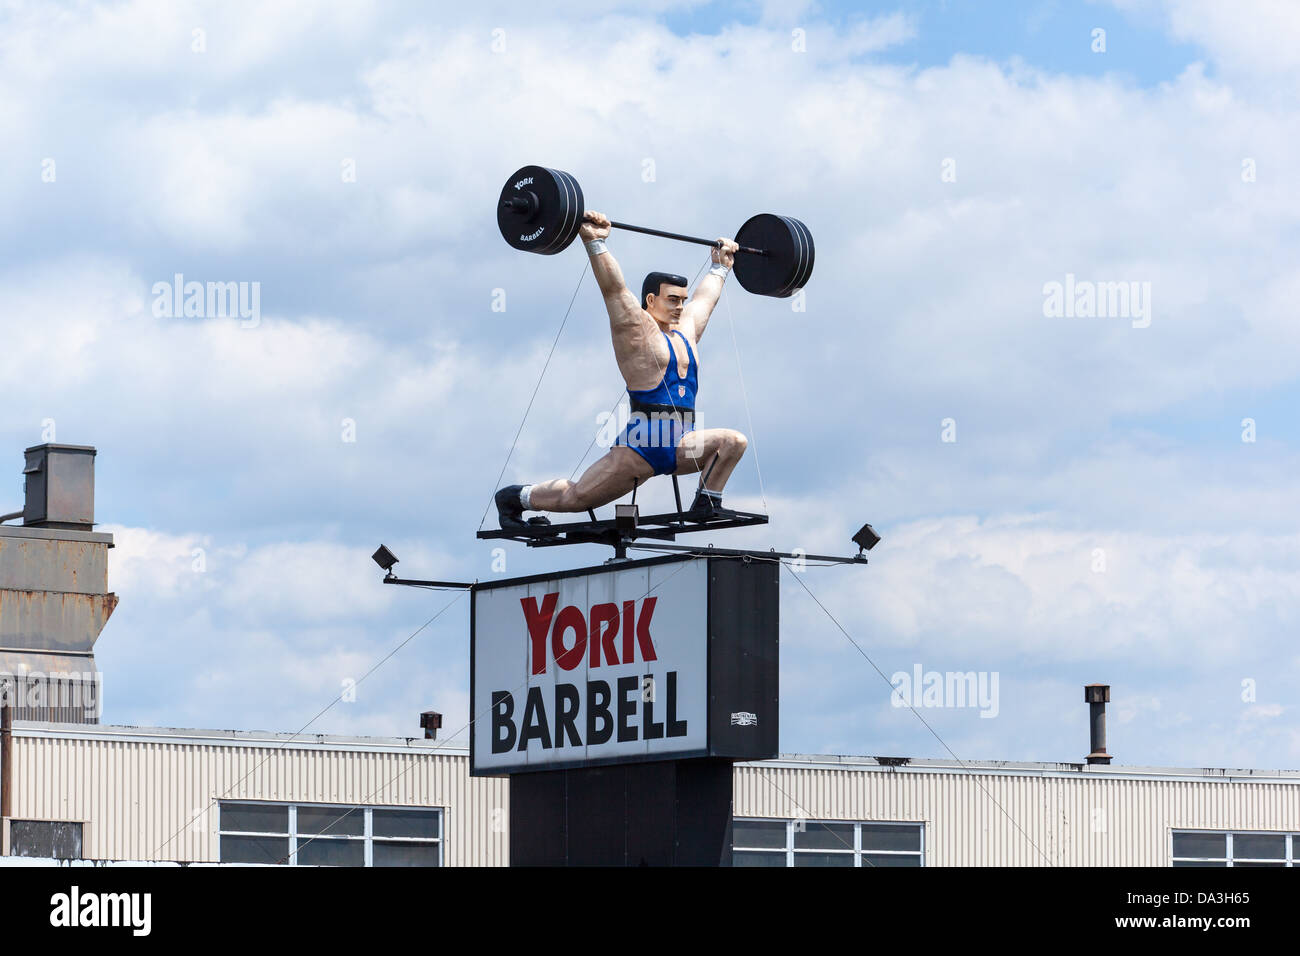 York Barbell sign. - Stock Image